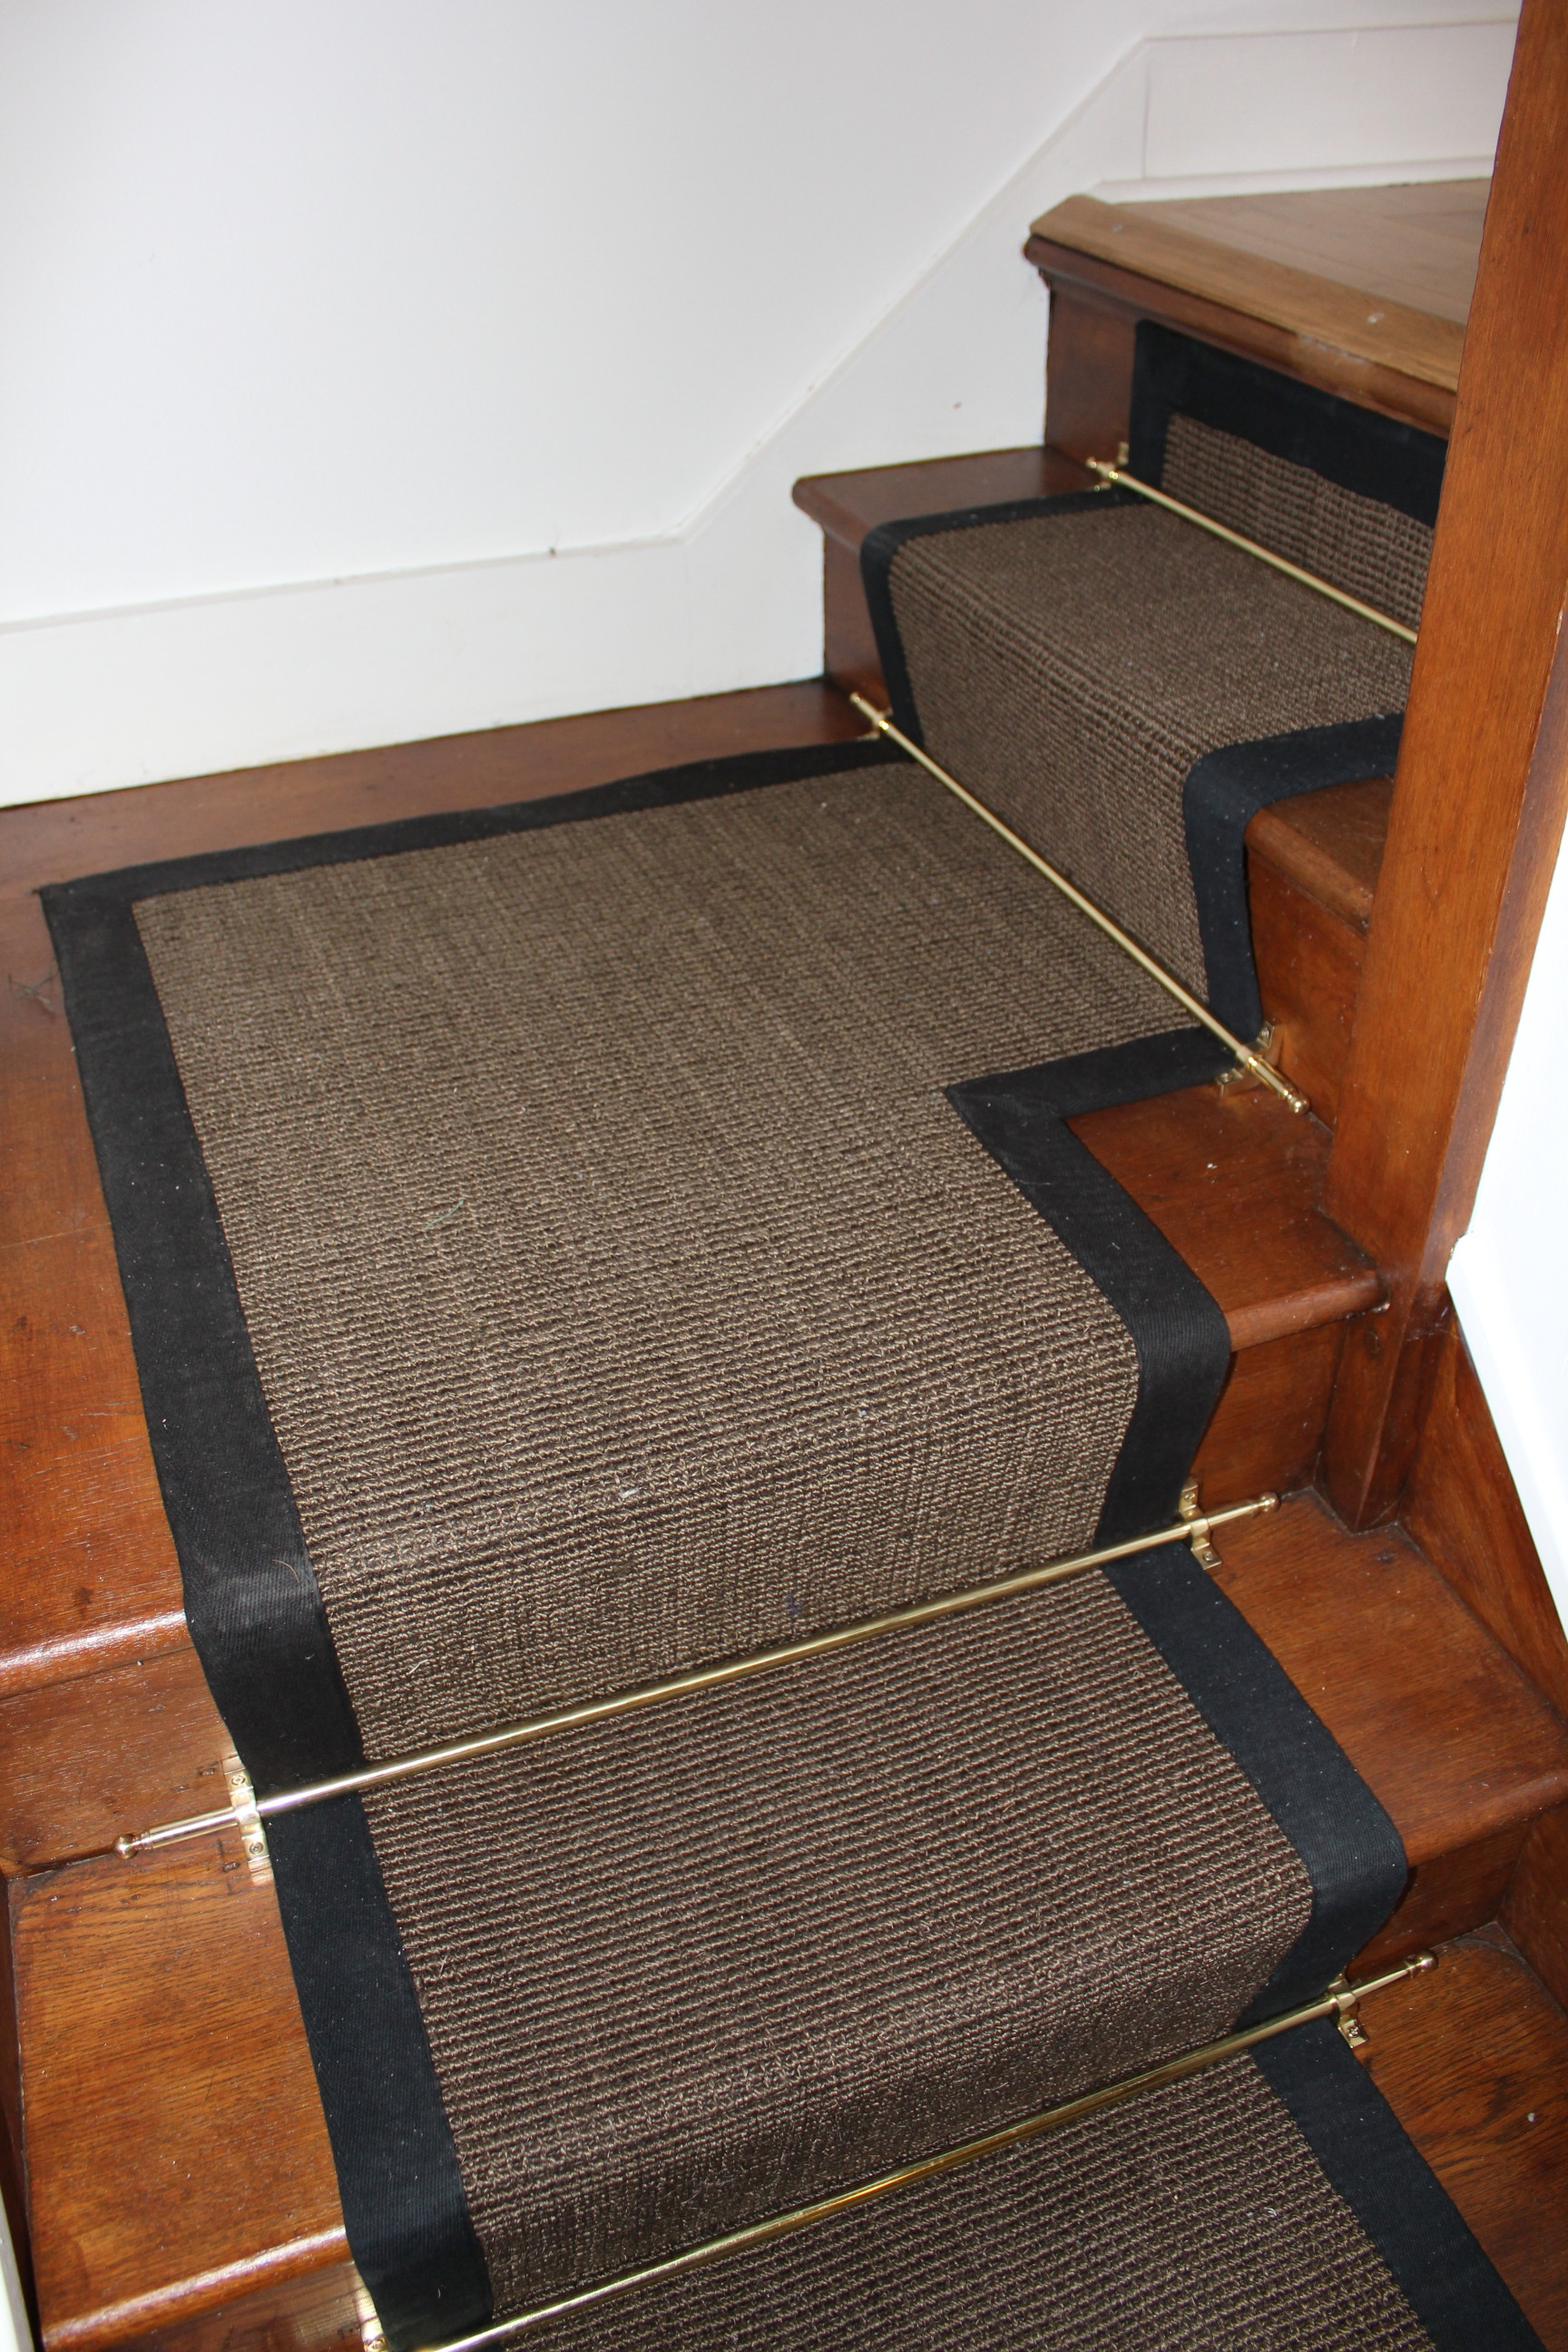 carpet runner for stairs with landing photo - 2 THNUGSA